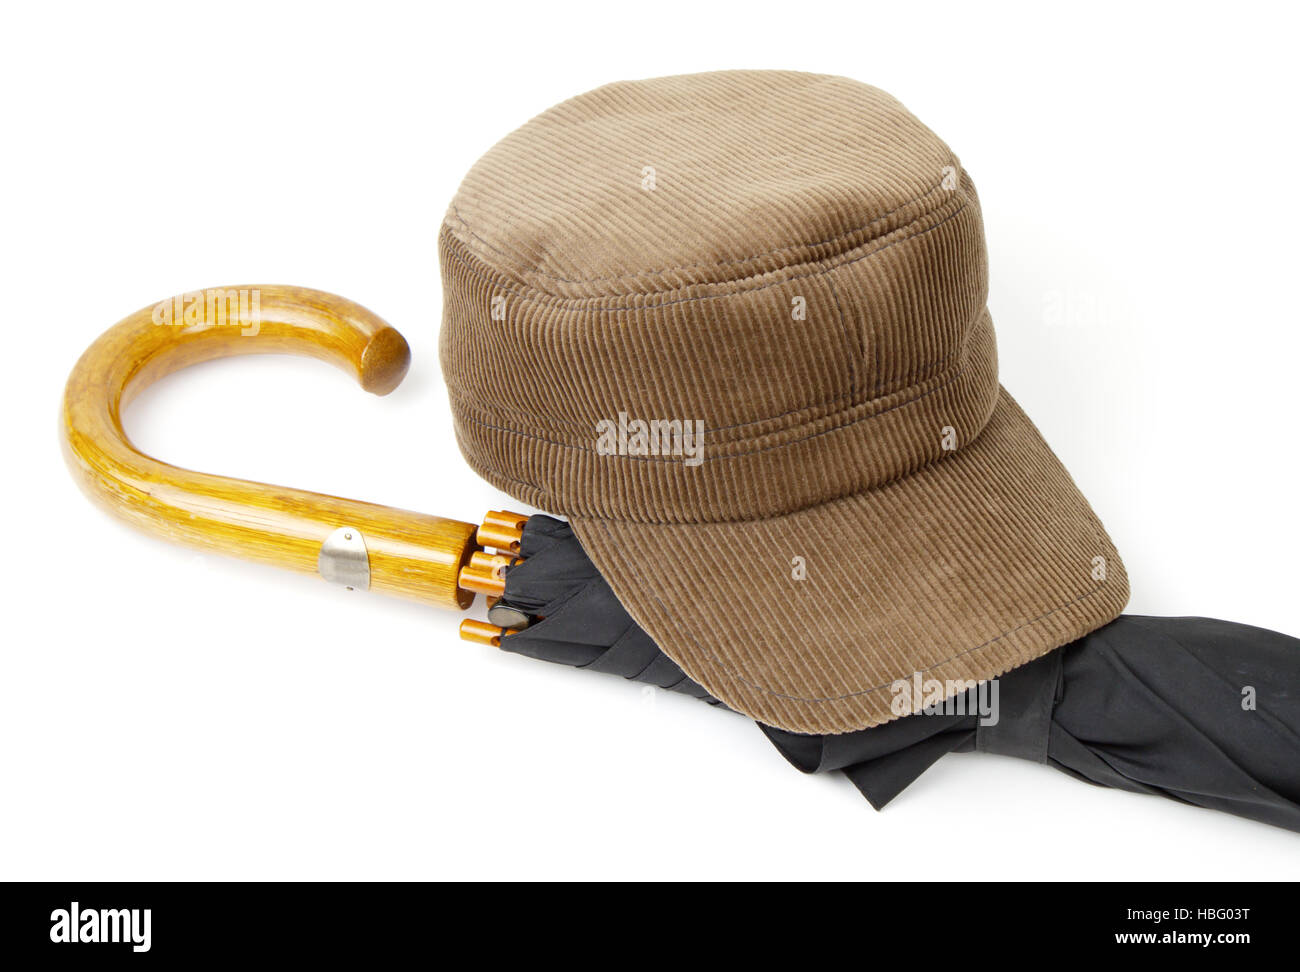 Headgear and an umbrella - Stock Image